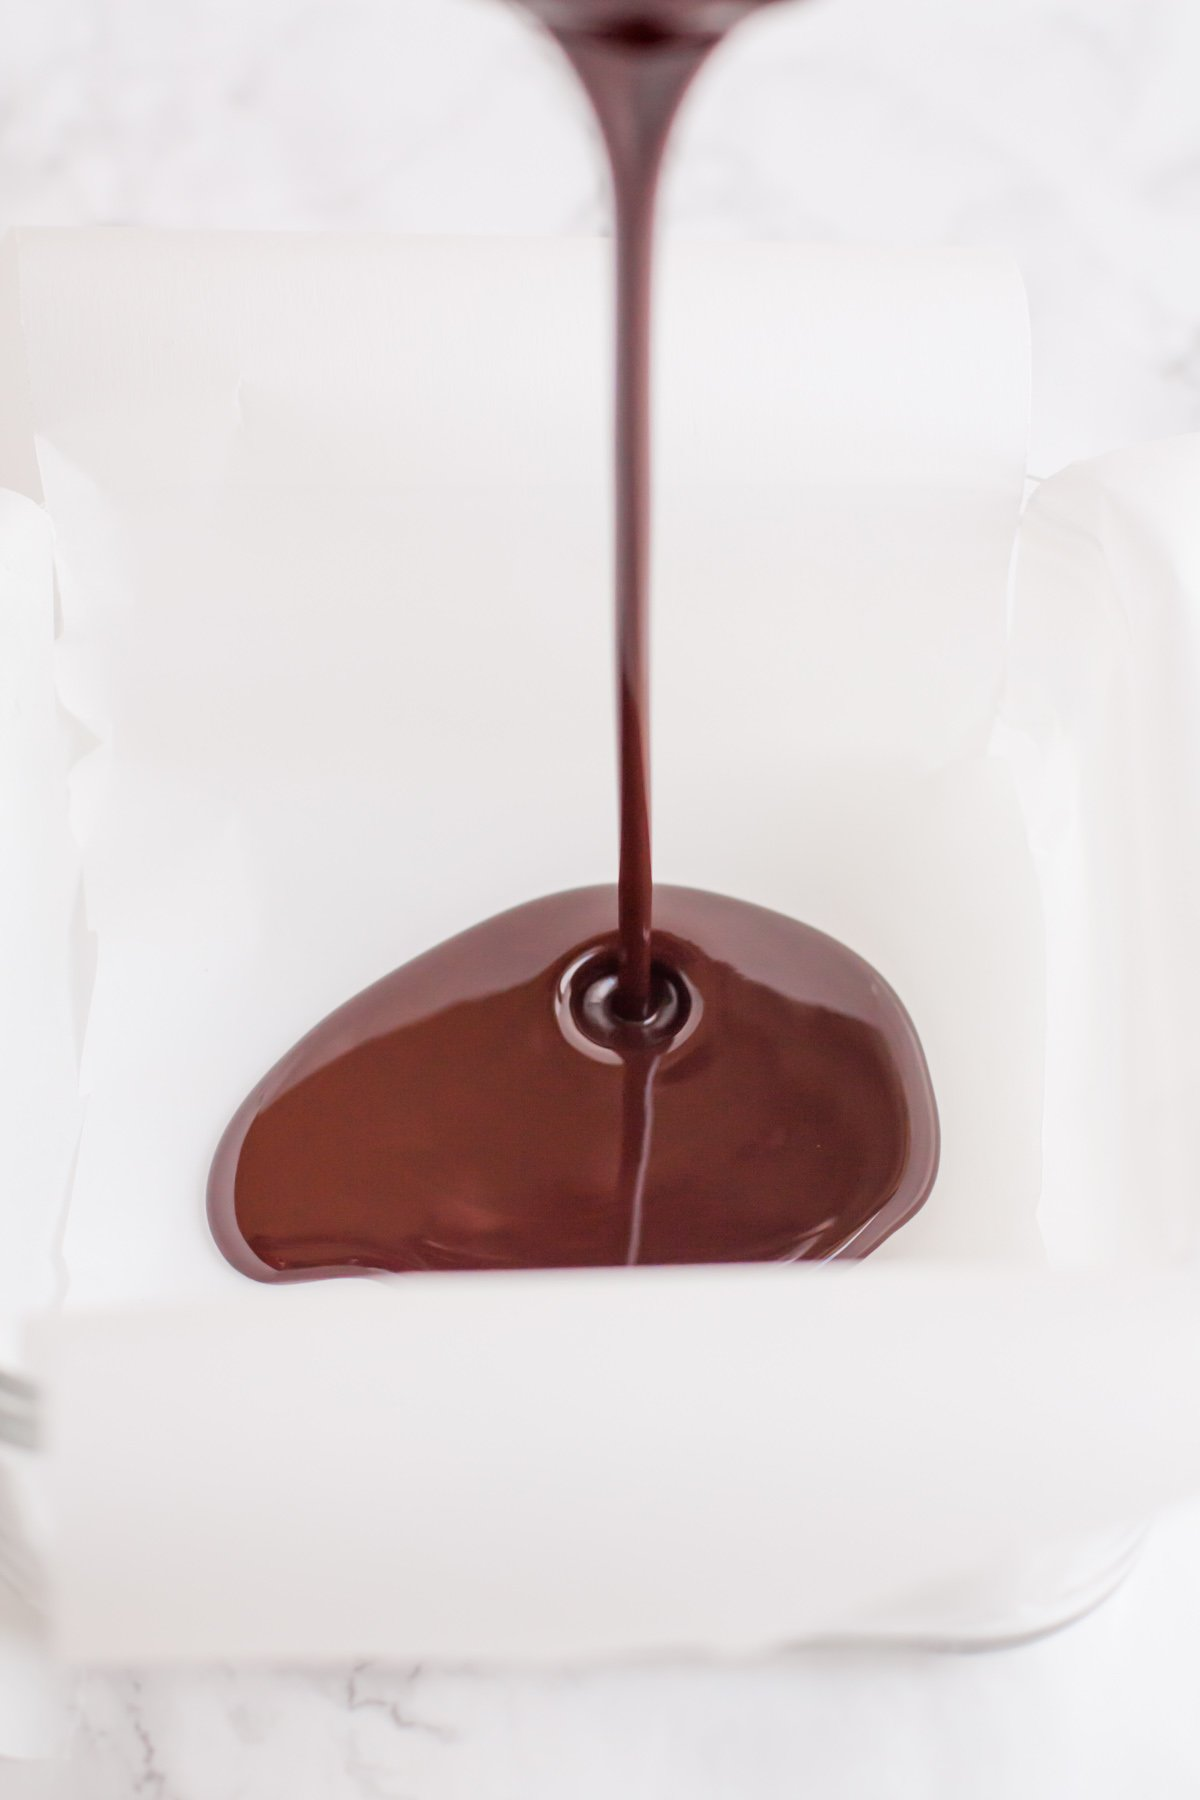 Melted coconut oil and cocoa powder being poured into a parchment paper-lined pan.